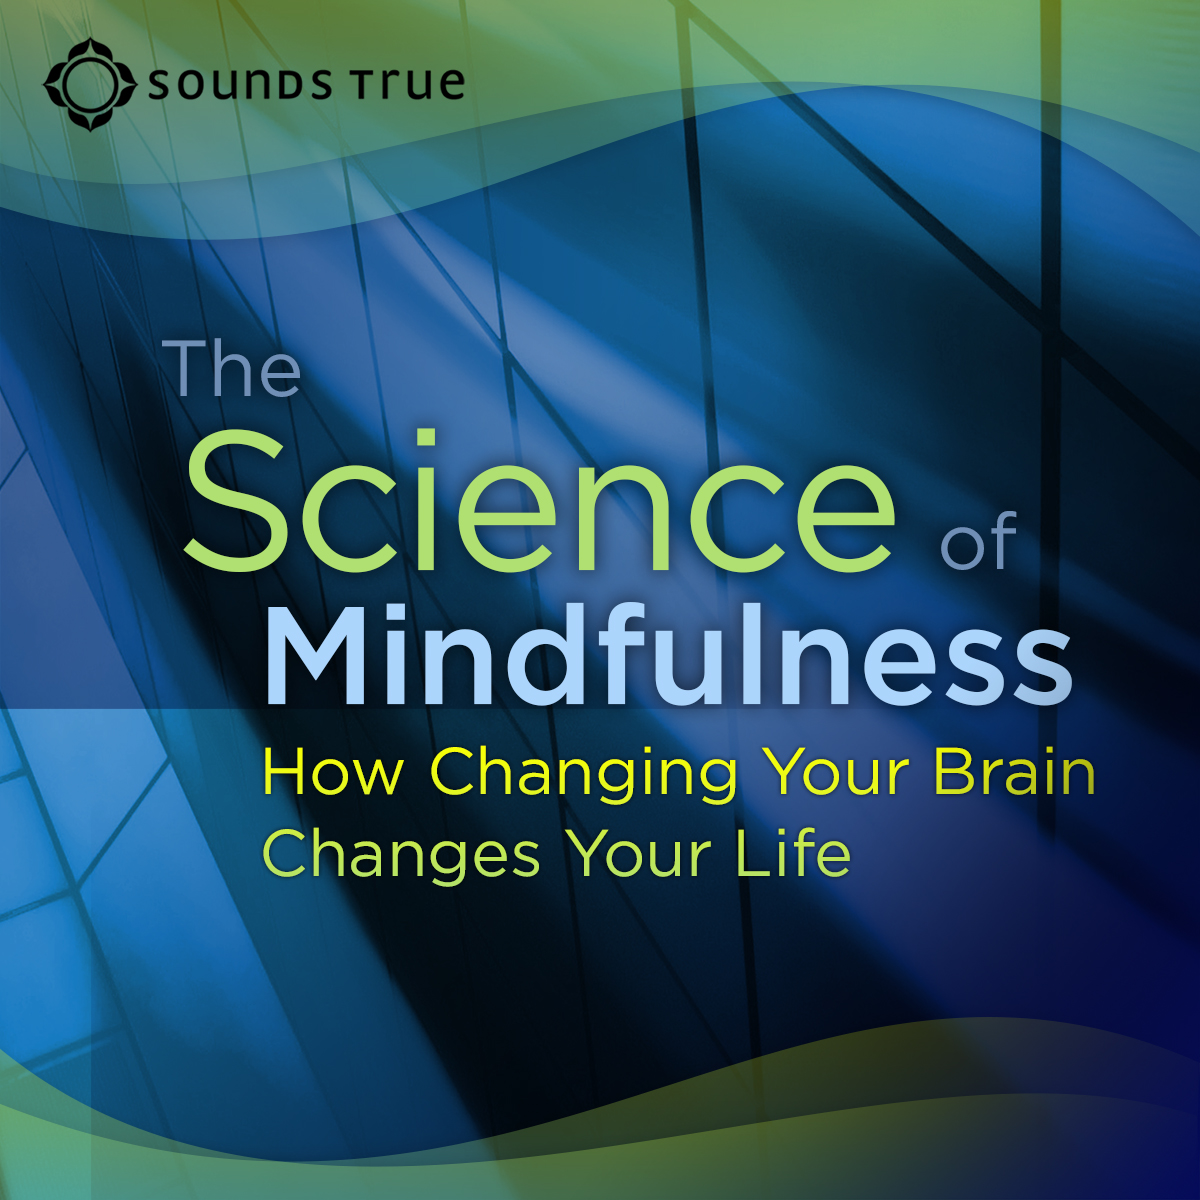 Change your life through mindfulness i did